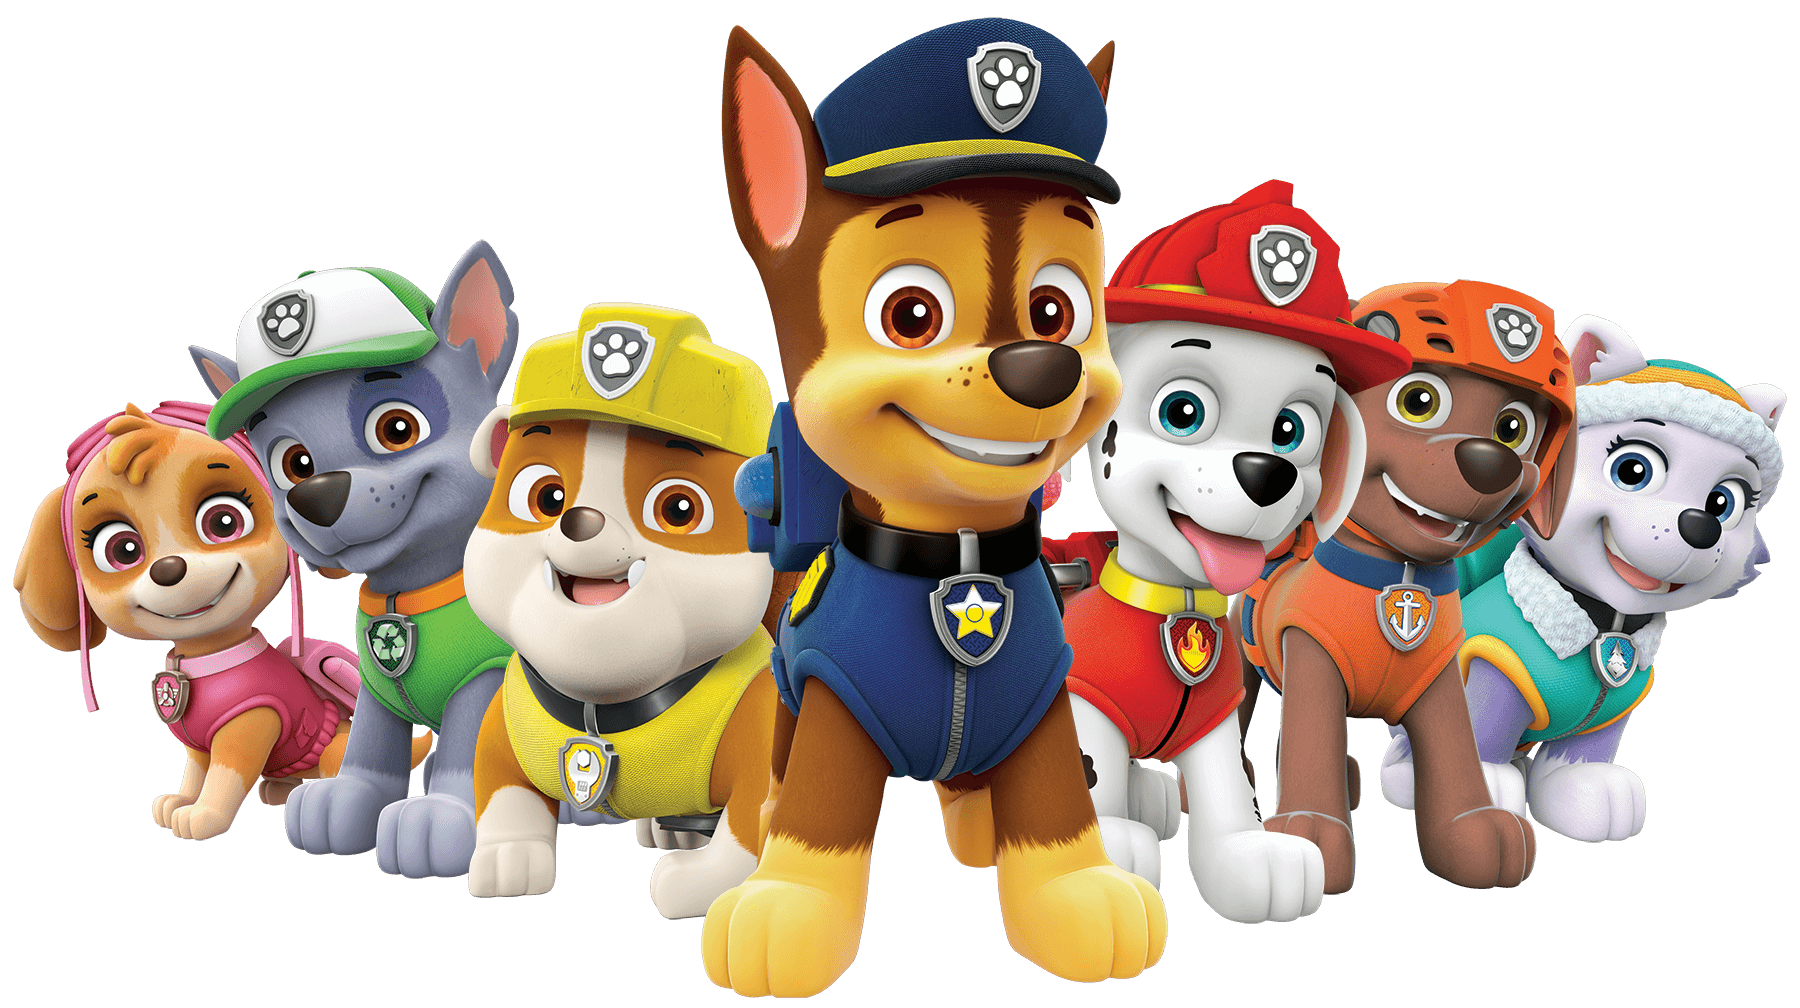 Paw Patrol Wallpapers High Quality | Download Free